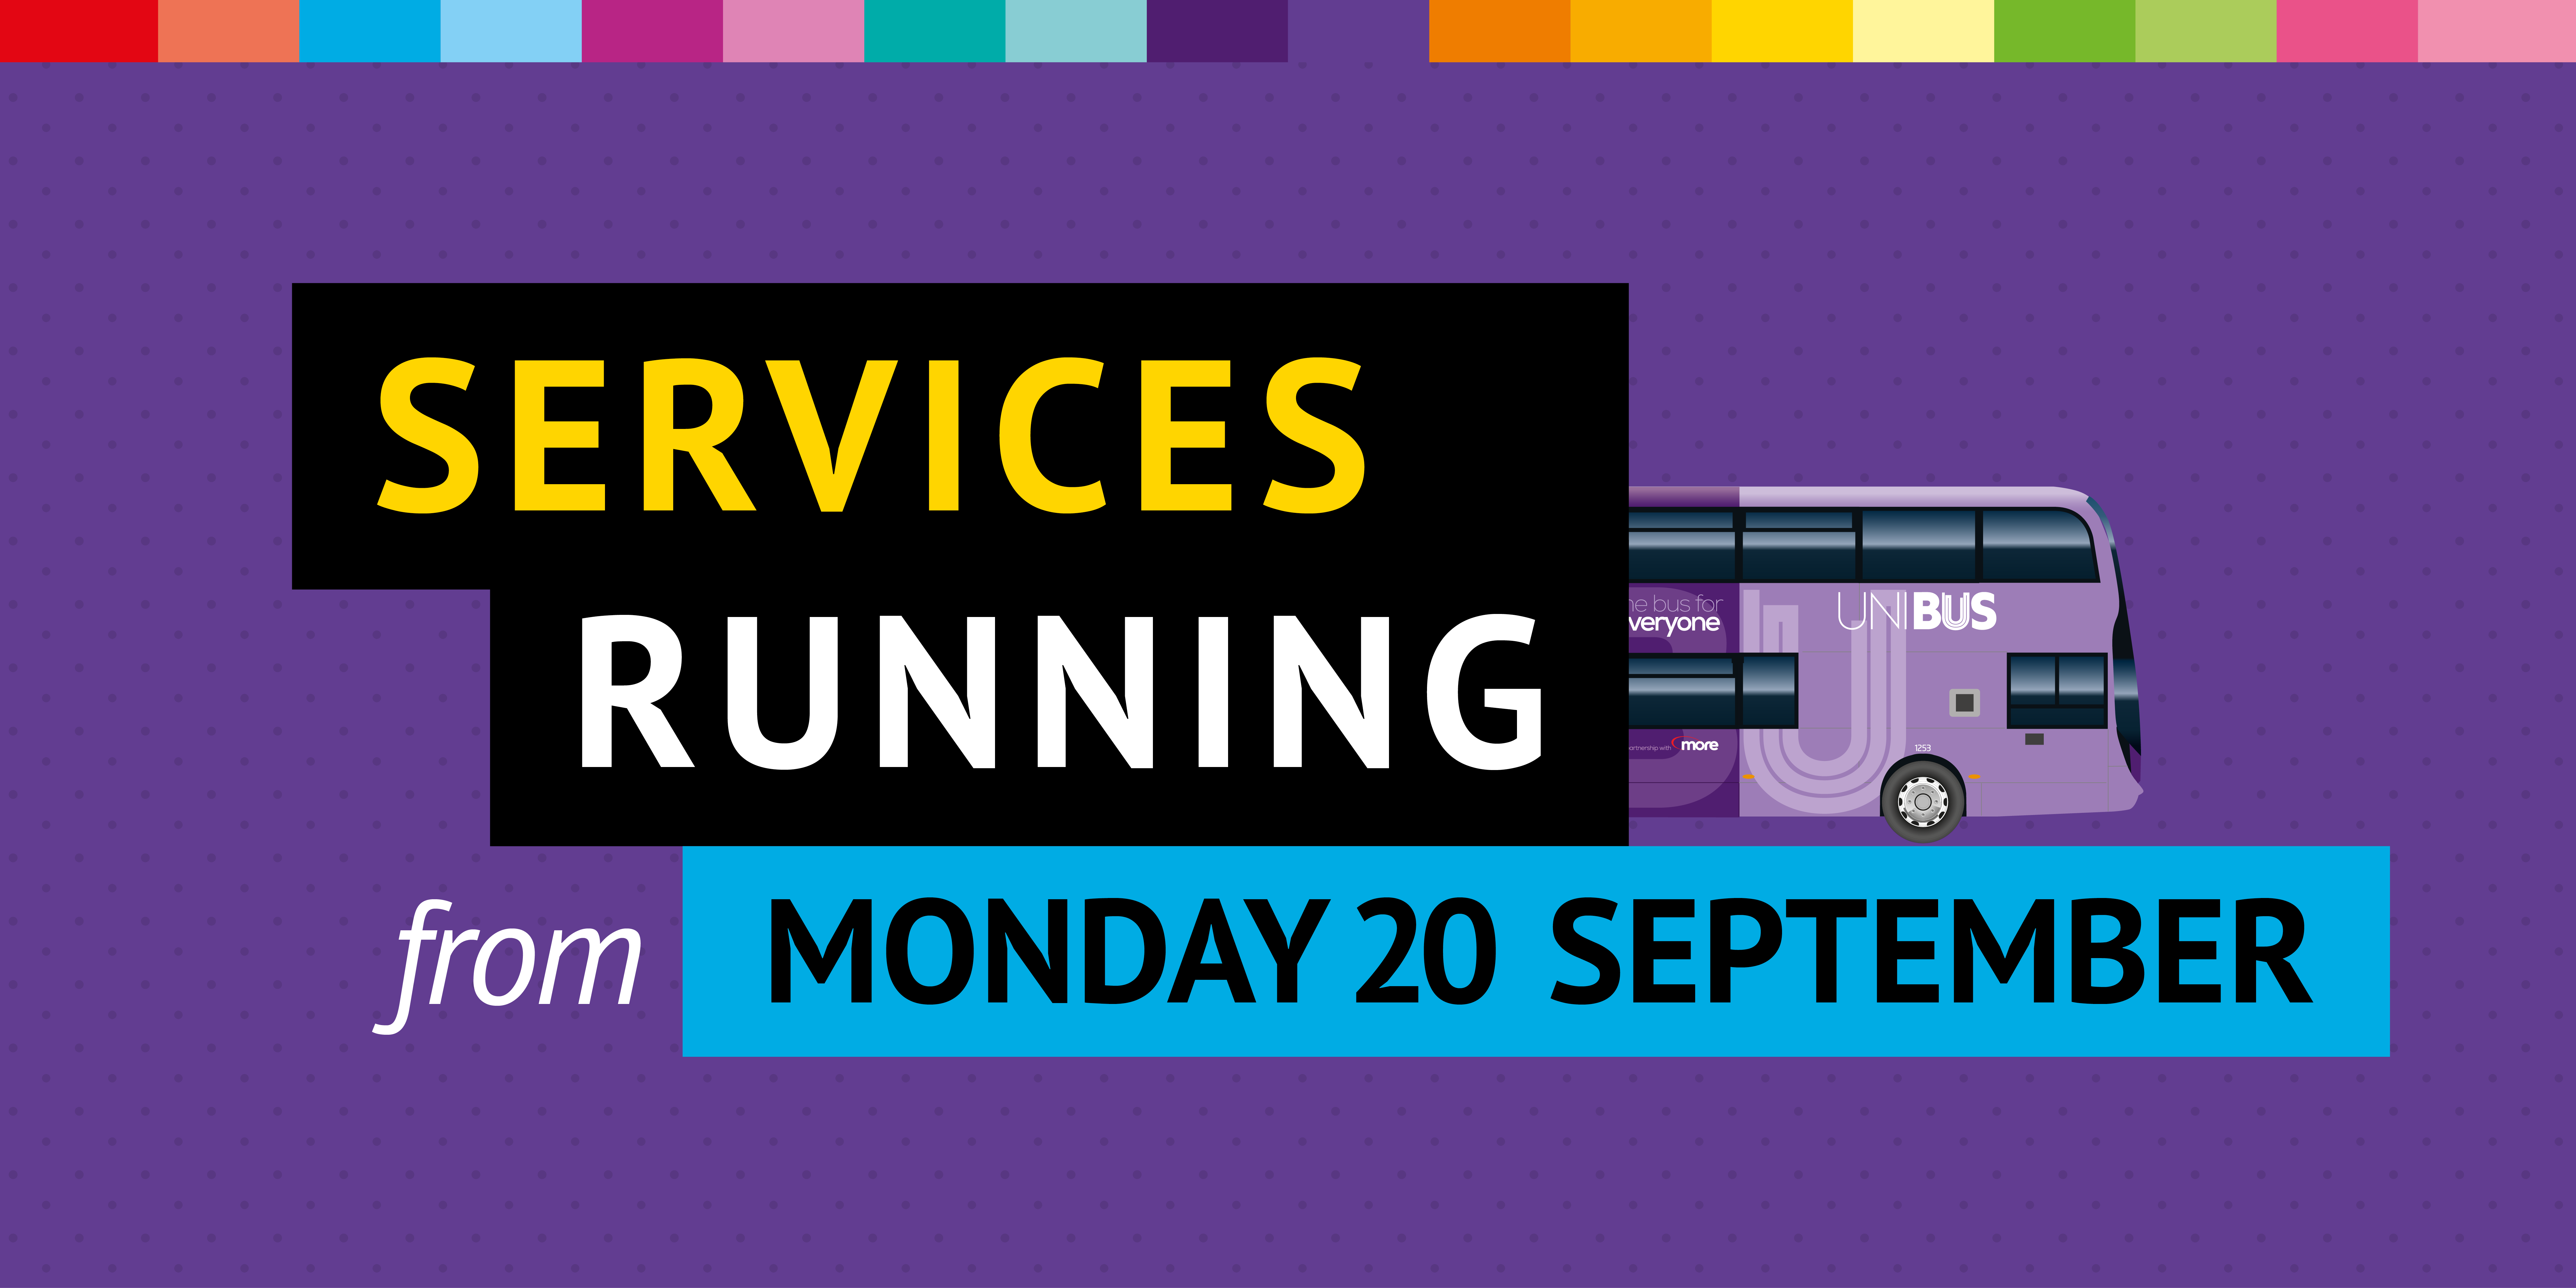 services running from 20th september